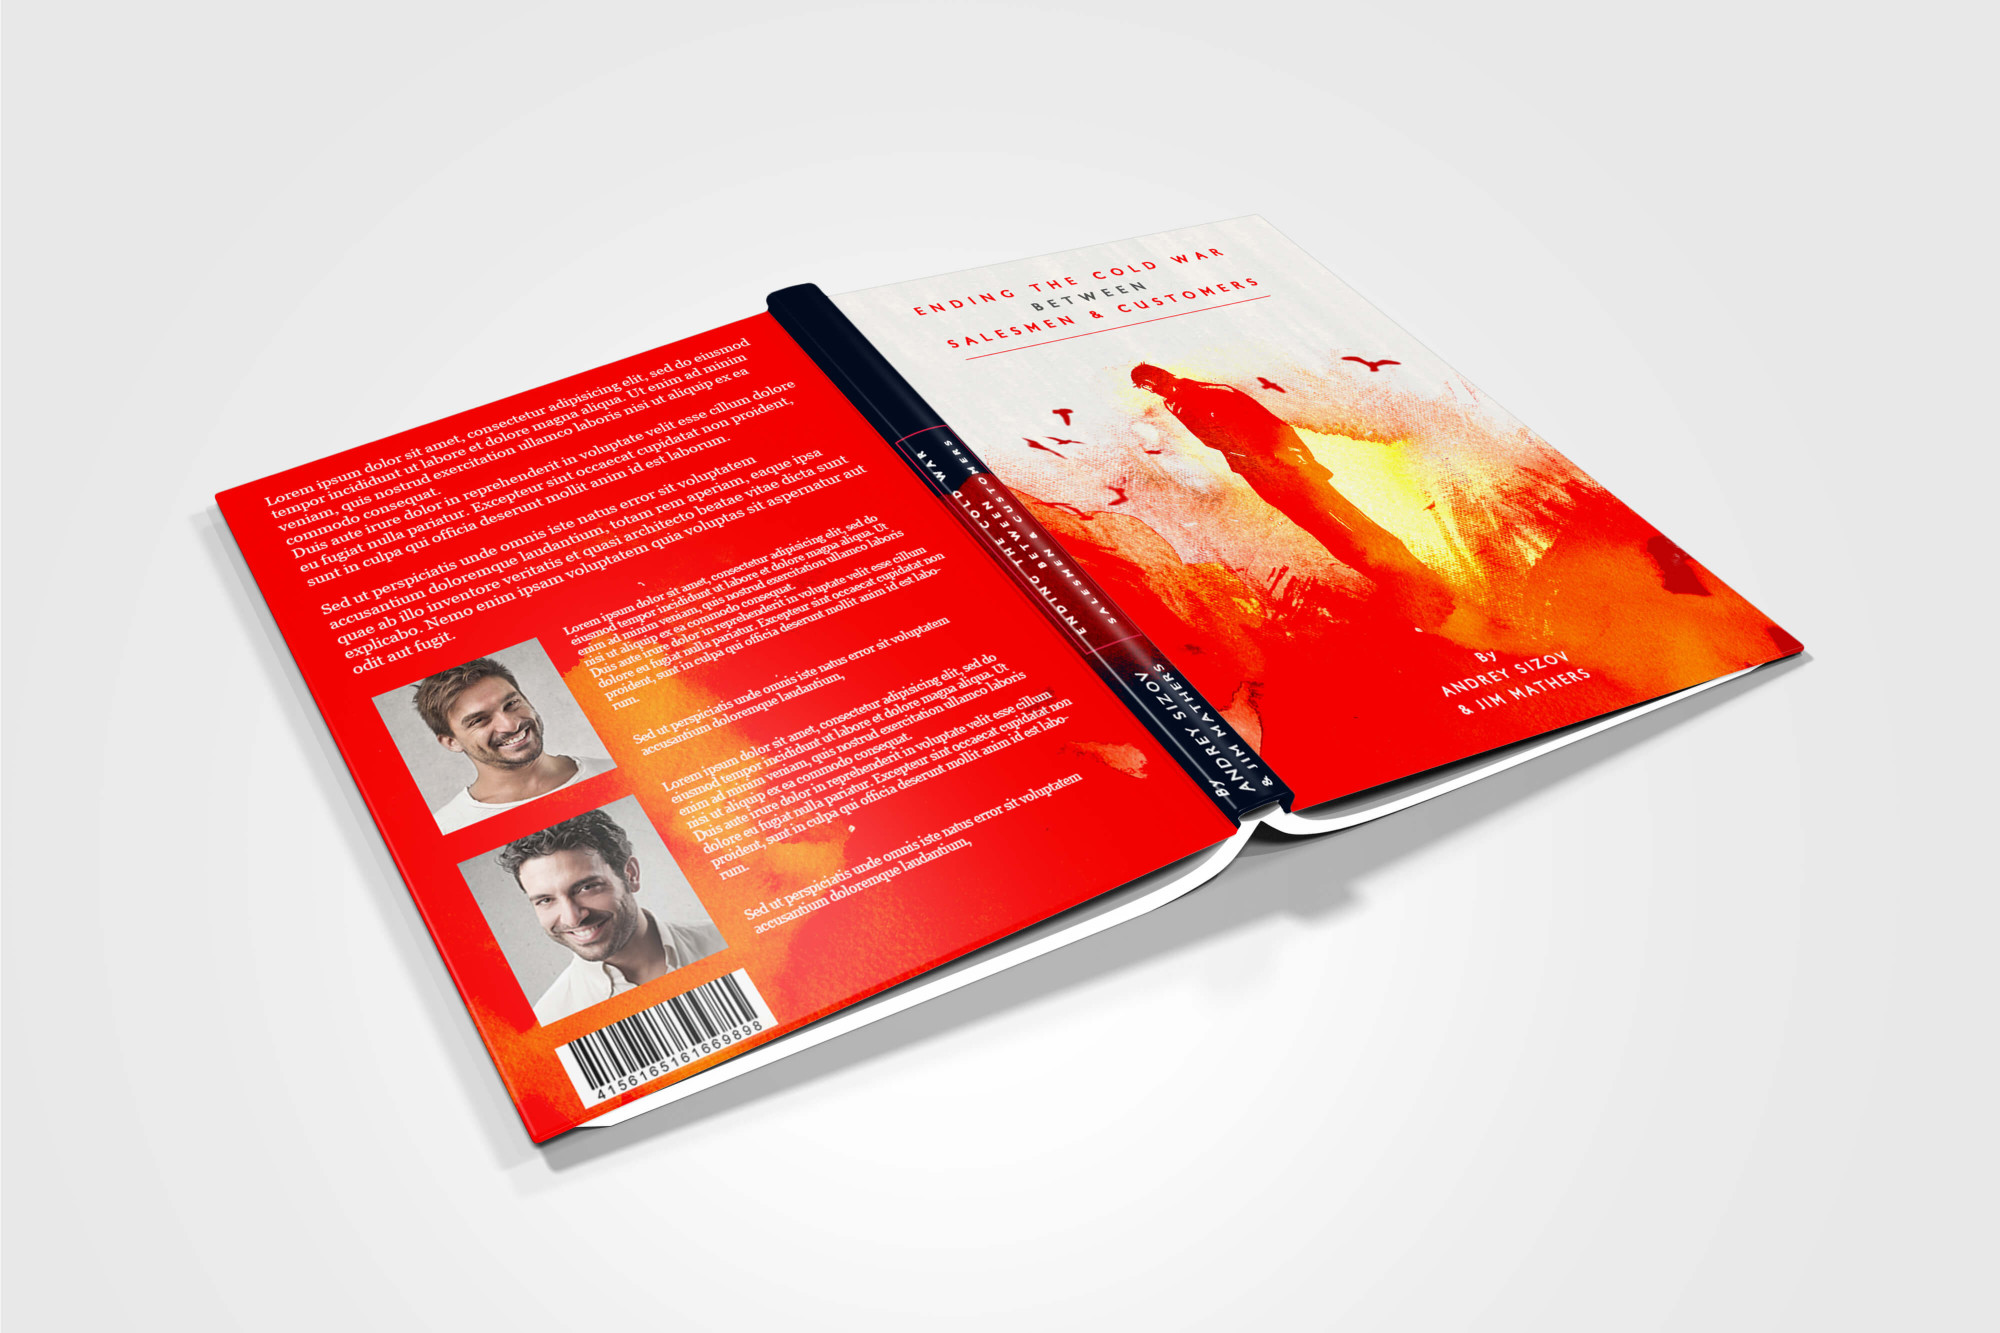 Best Book Cover Graphic Design : Top graphic design agency